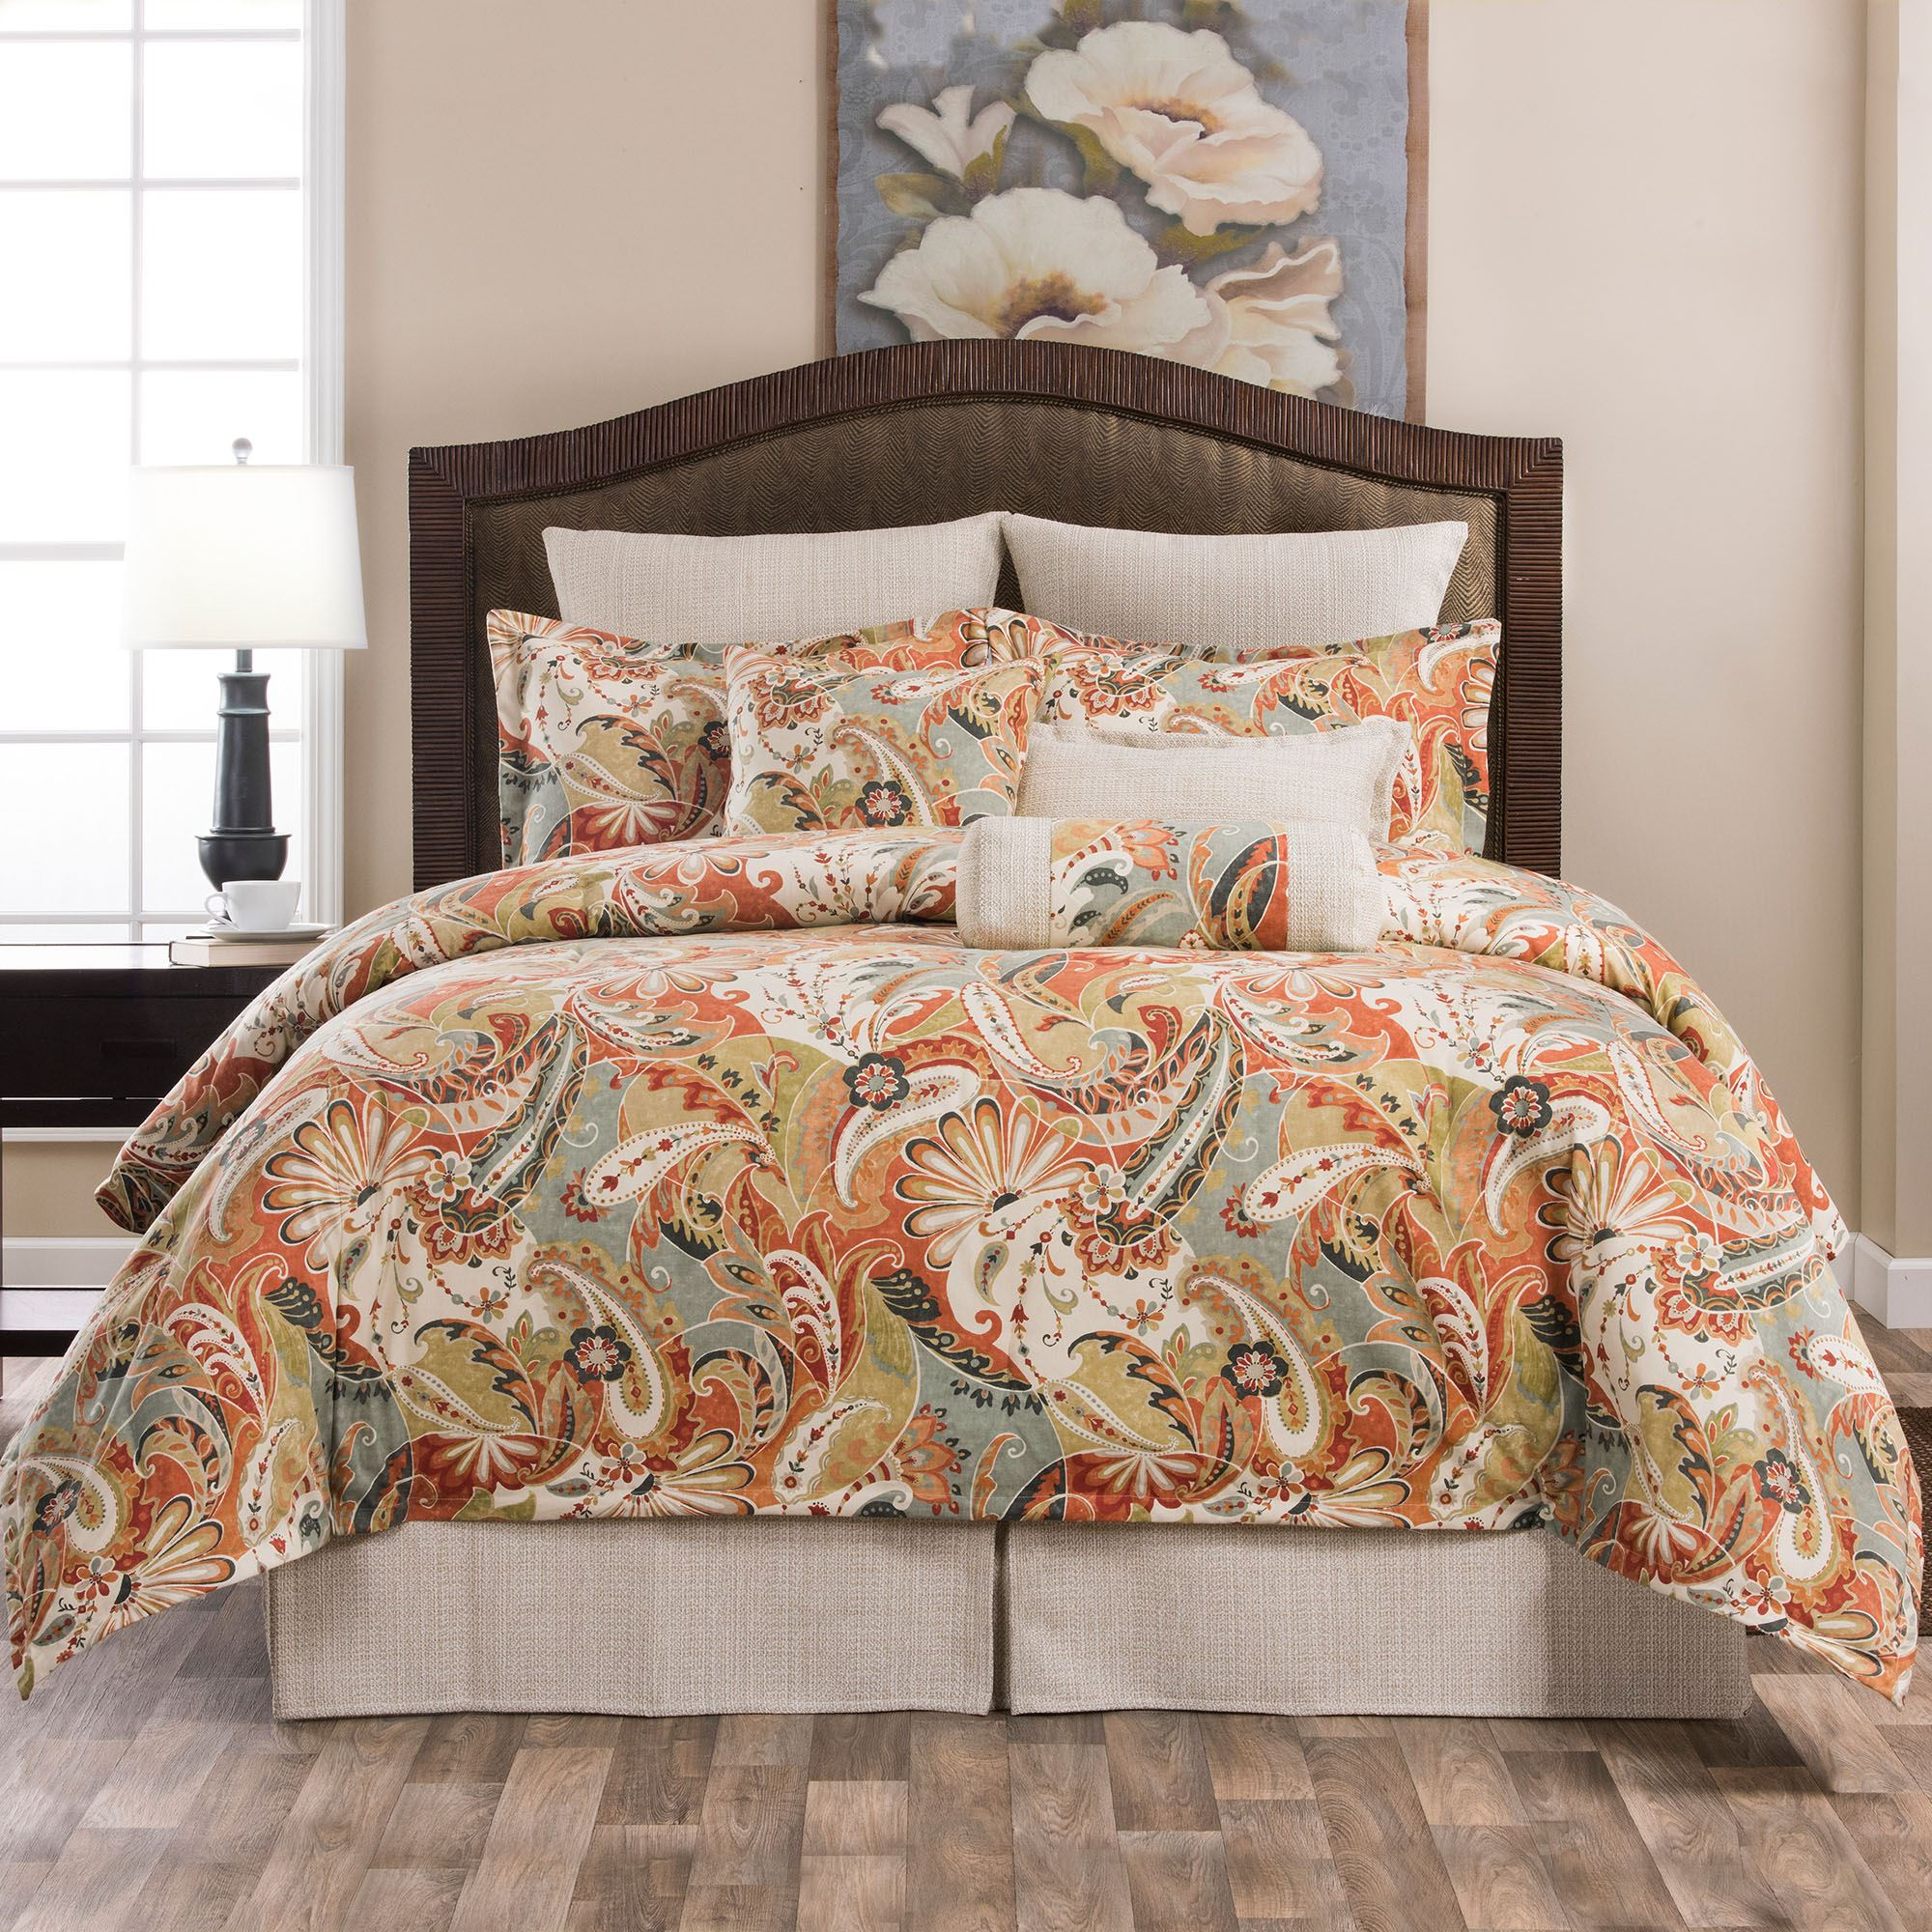 Contempo Multicolored Paisley Comforter Bedding